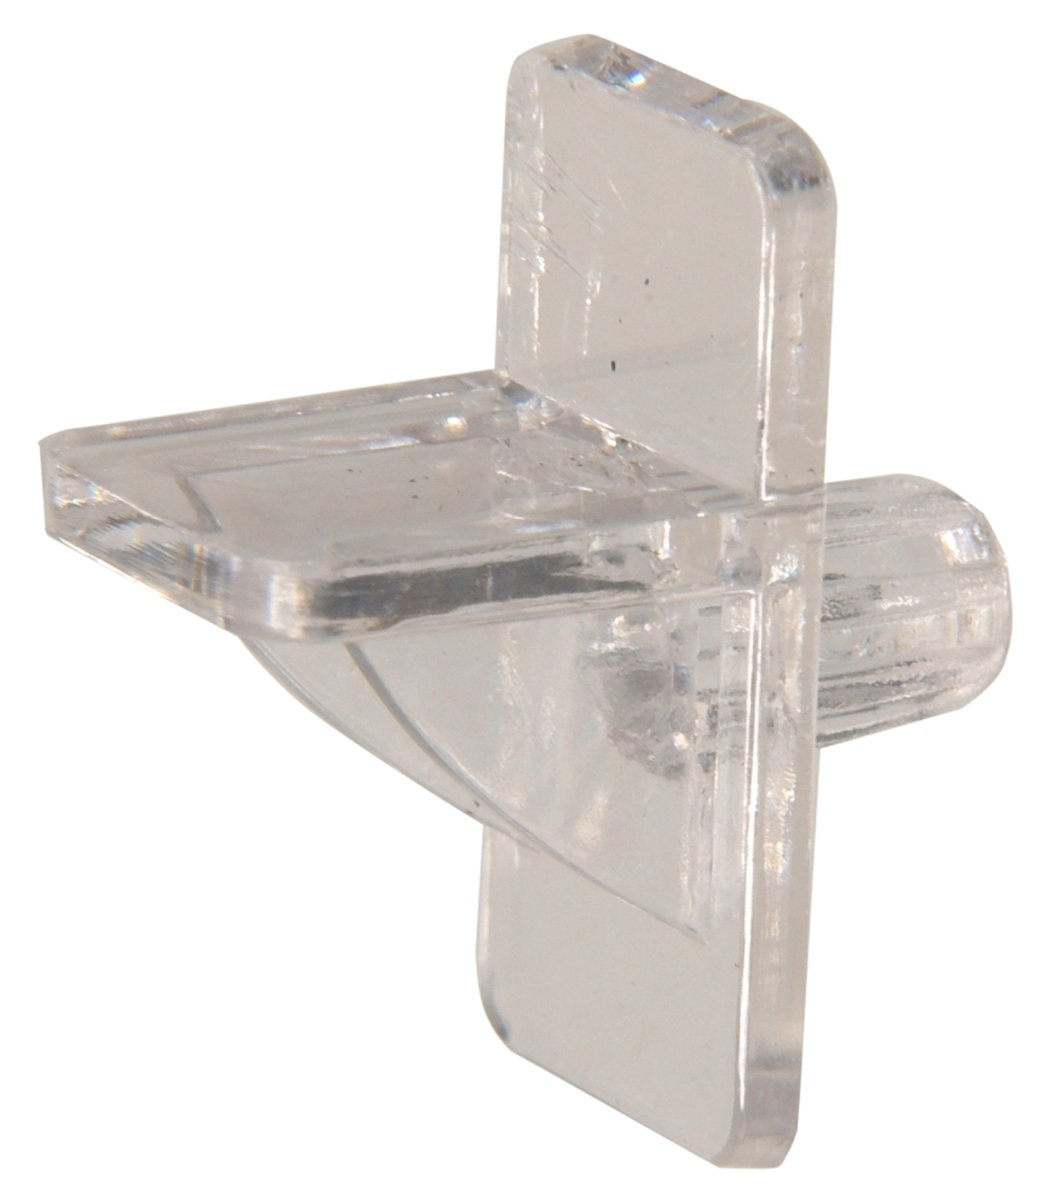 Hillman 52052 Square Shelf Pin-Clear Plastic, Fits 1/4-Inch Hole, 1/4-Inch Pin Length, 15-Pack